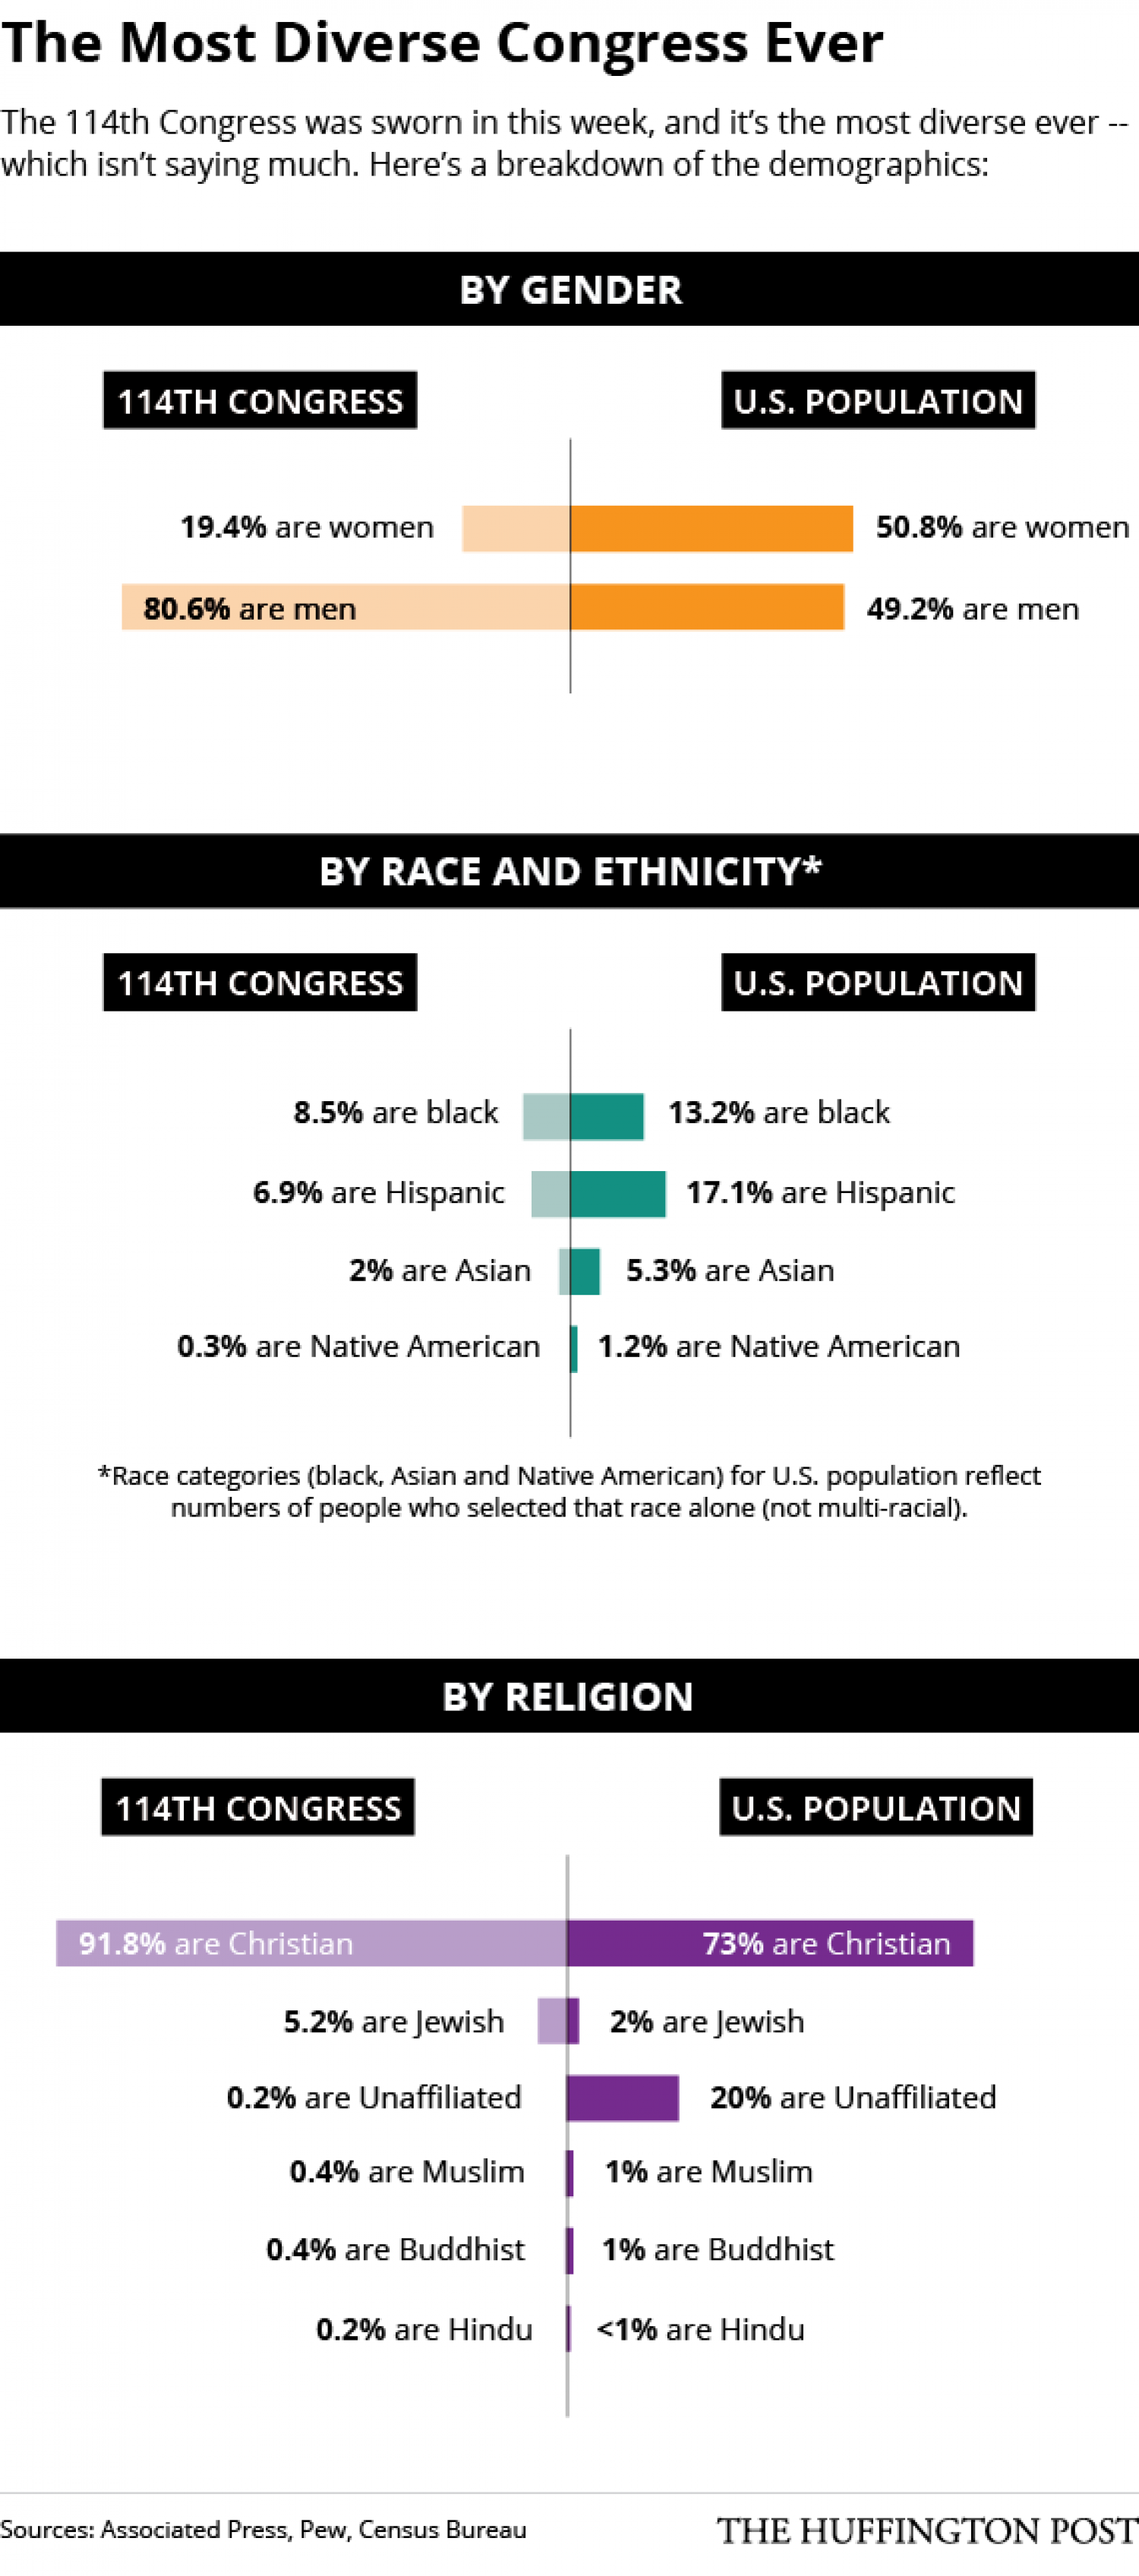 The Most Diverse Congress Ever Infographic